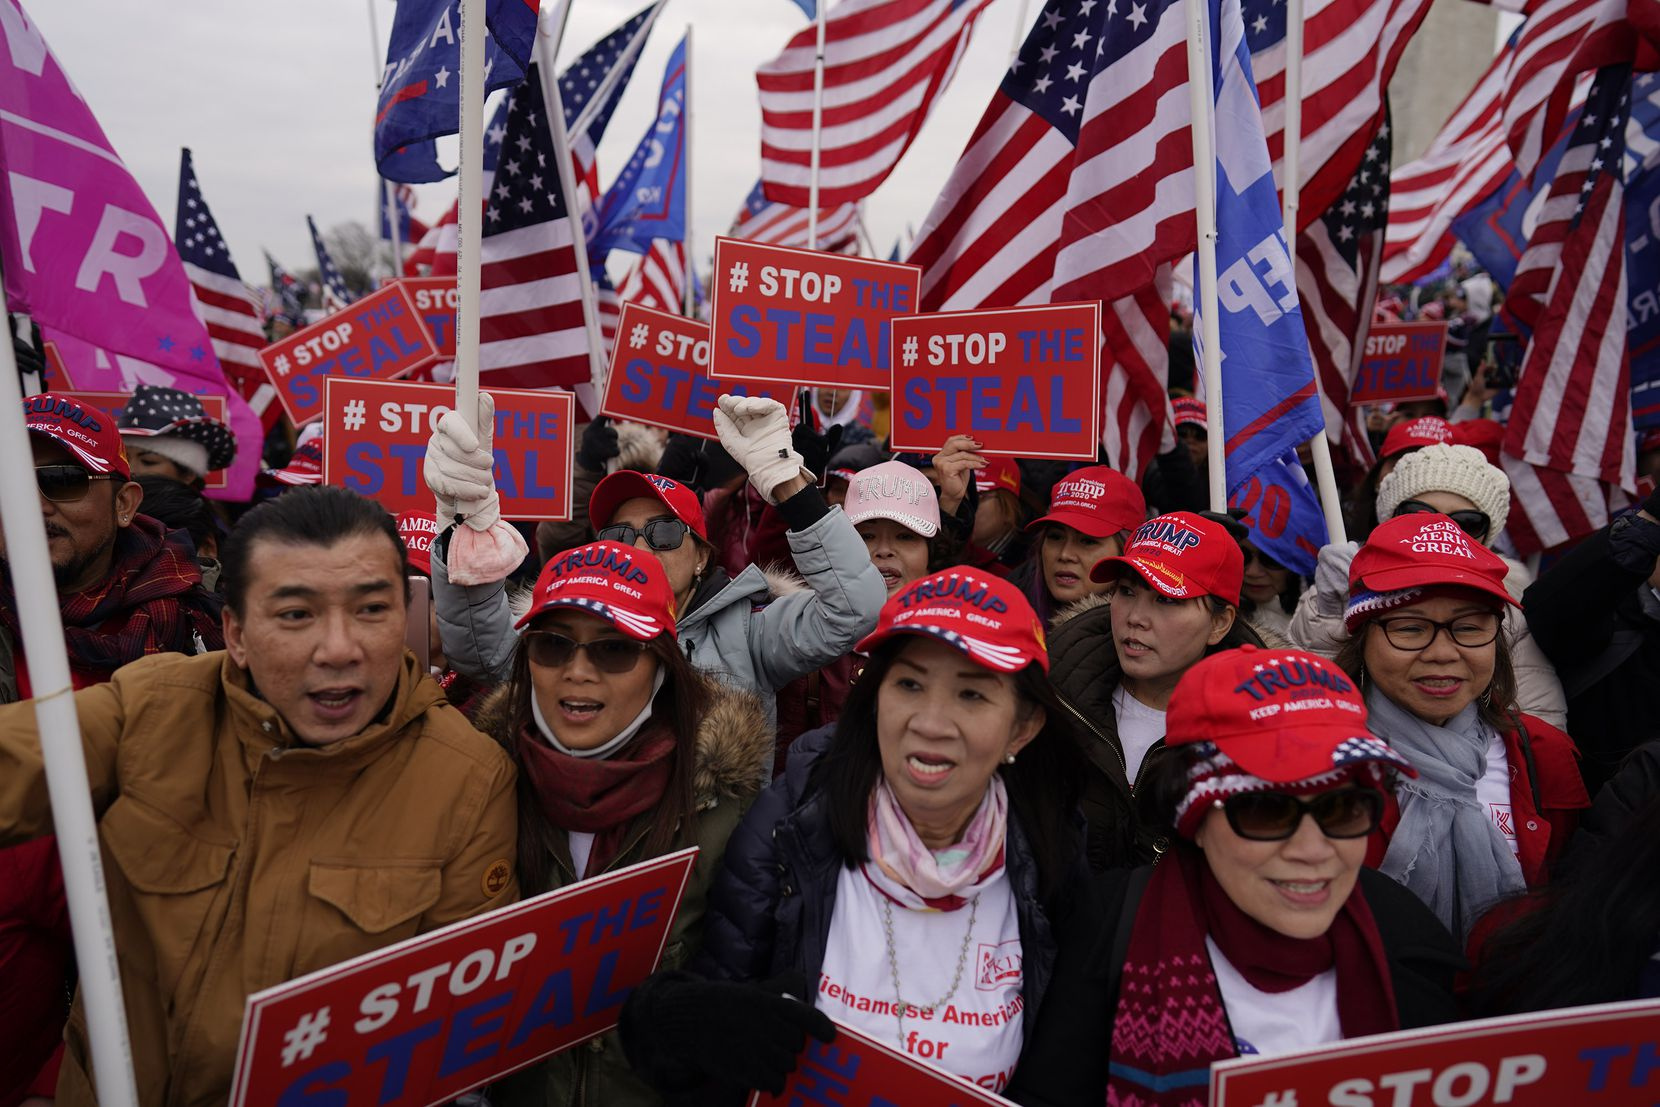 Protesters gather on the second day of pro-Trump events fueled by President Donald Trump's continued claims of election fraud in an attempt to overturn the results before Congress finalizes them in a joint session of the 117th Congress on Wednesday, Jan. 6, 2021 in Washington, D.C. (Kent Nishimura/Los Angeles Times/TNS)